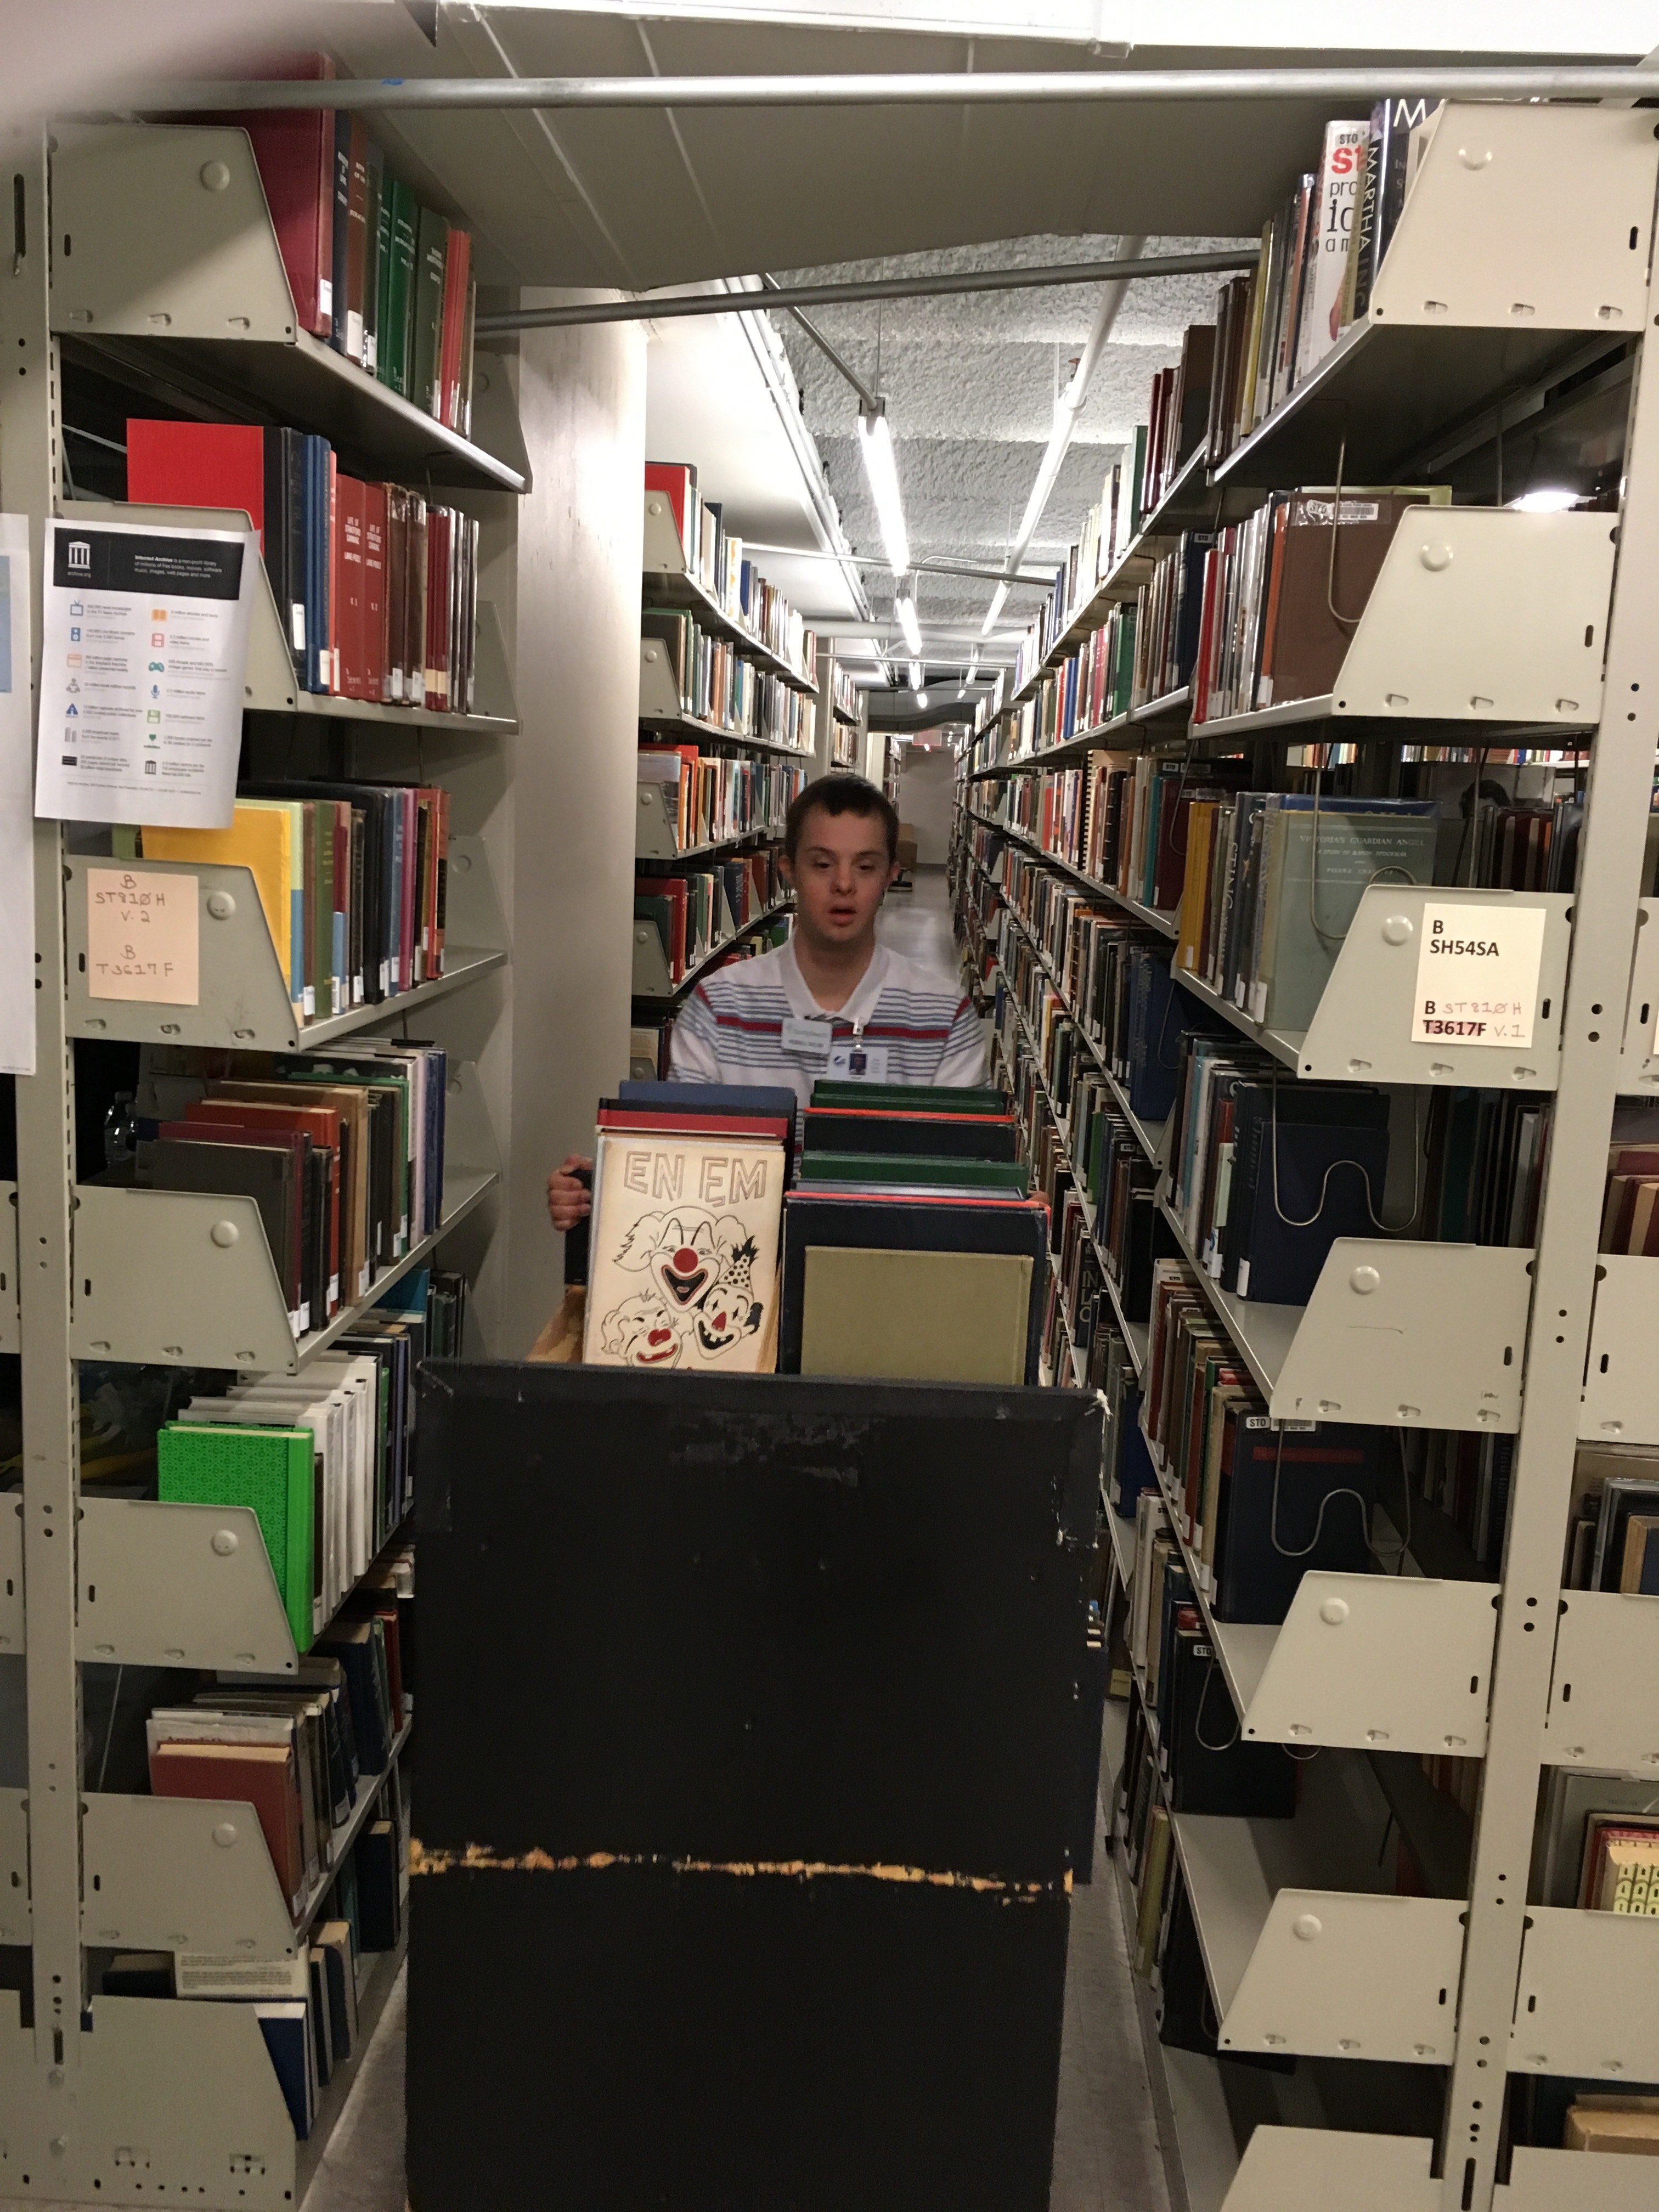 Russell Taylor, who has Downs syndrome, finds books to scan at the Allen County Public Library in Fort Wayne, Indiana, while serving a records preservation mission with his parents.